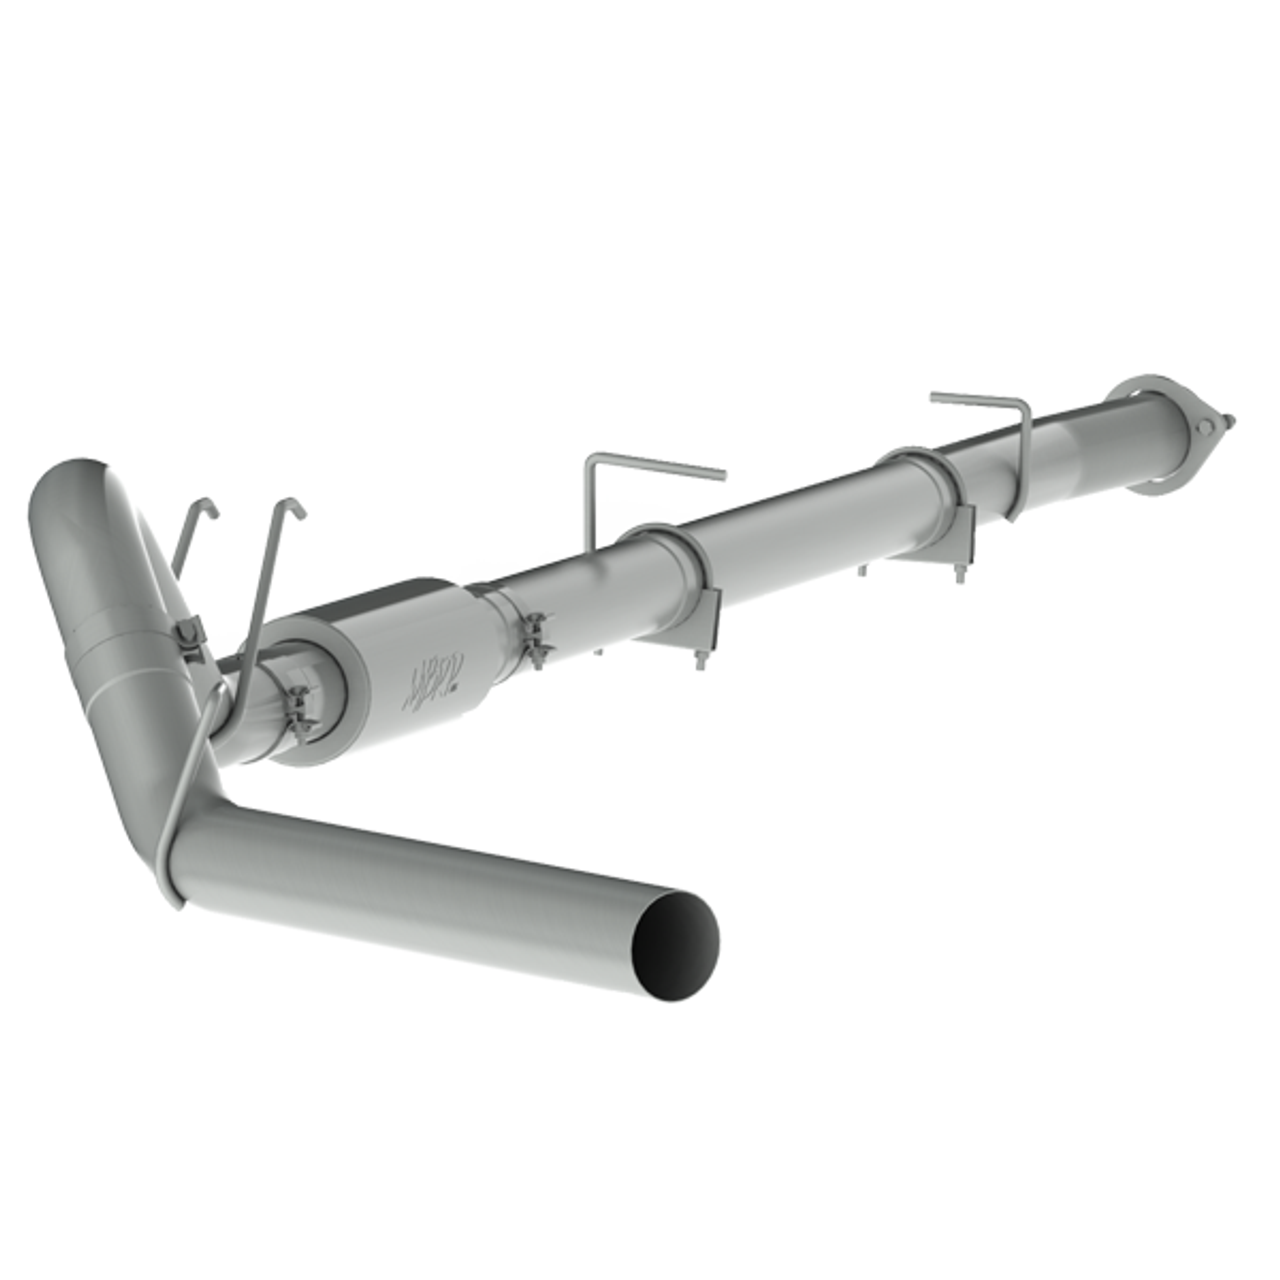 """2008-2010 Ford Powerstroke 6.4L MBRP (P1 Race Parts) 4"""" Downpipe Back Aluminized Race Exhaust With Muffler (Includes Free Tip) C6270P"""